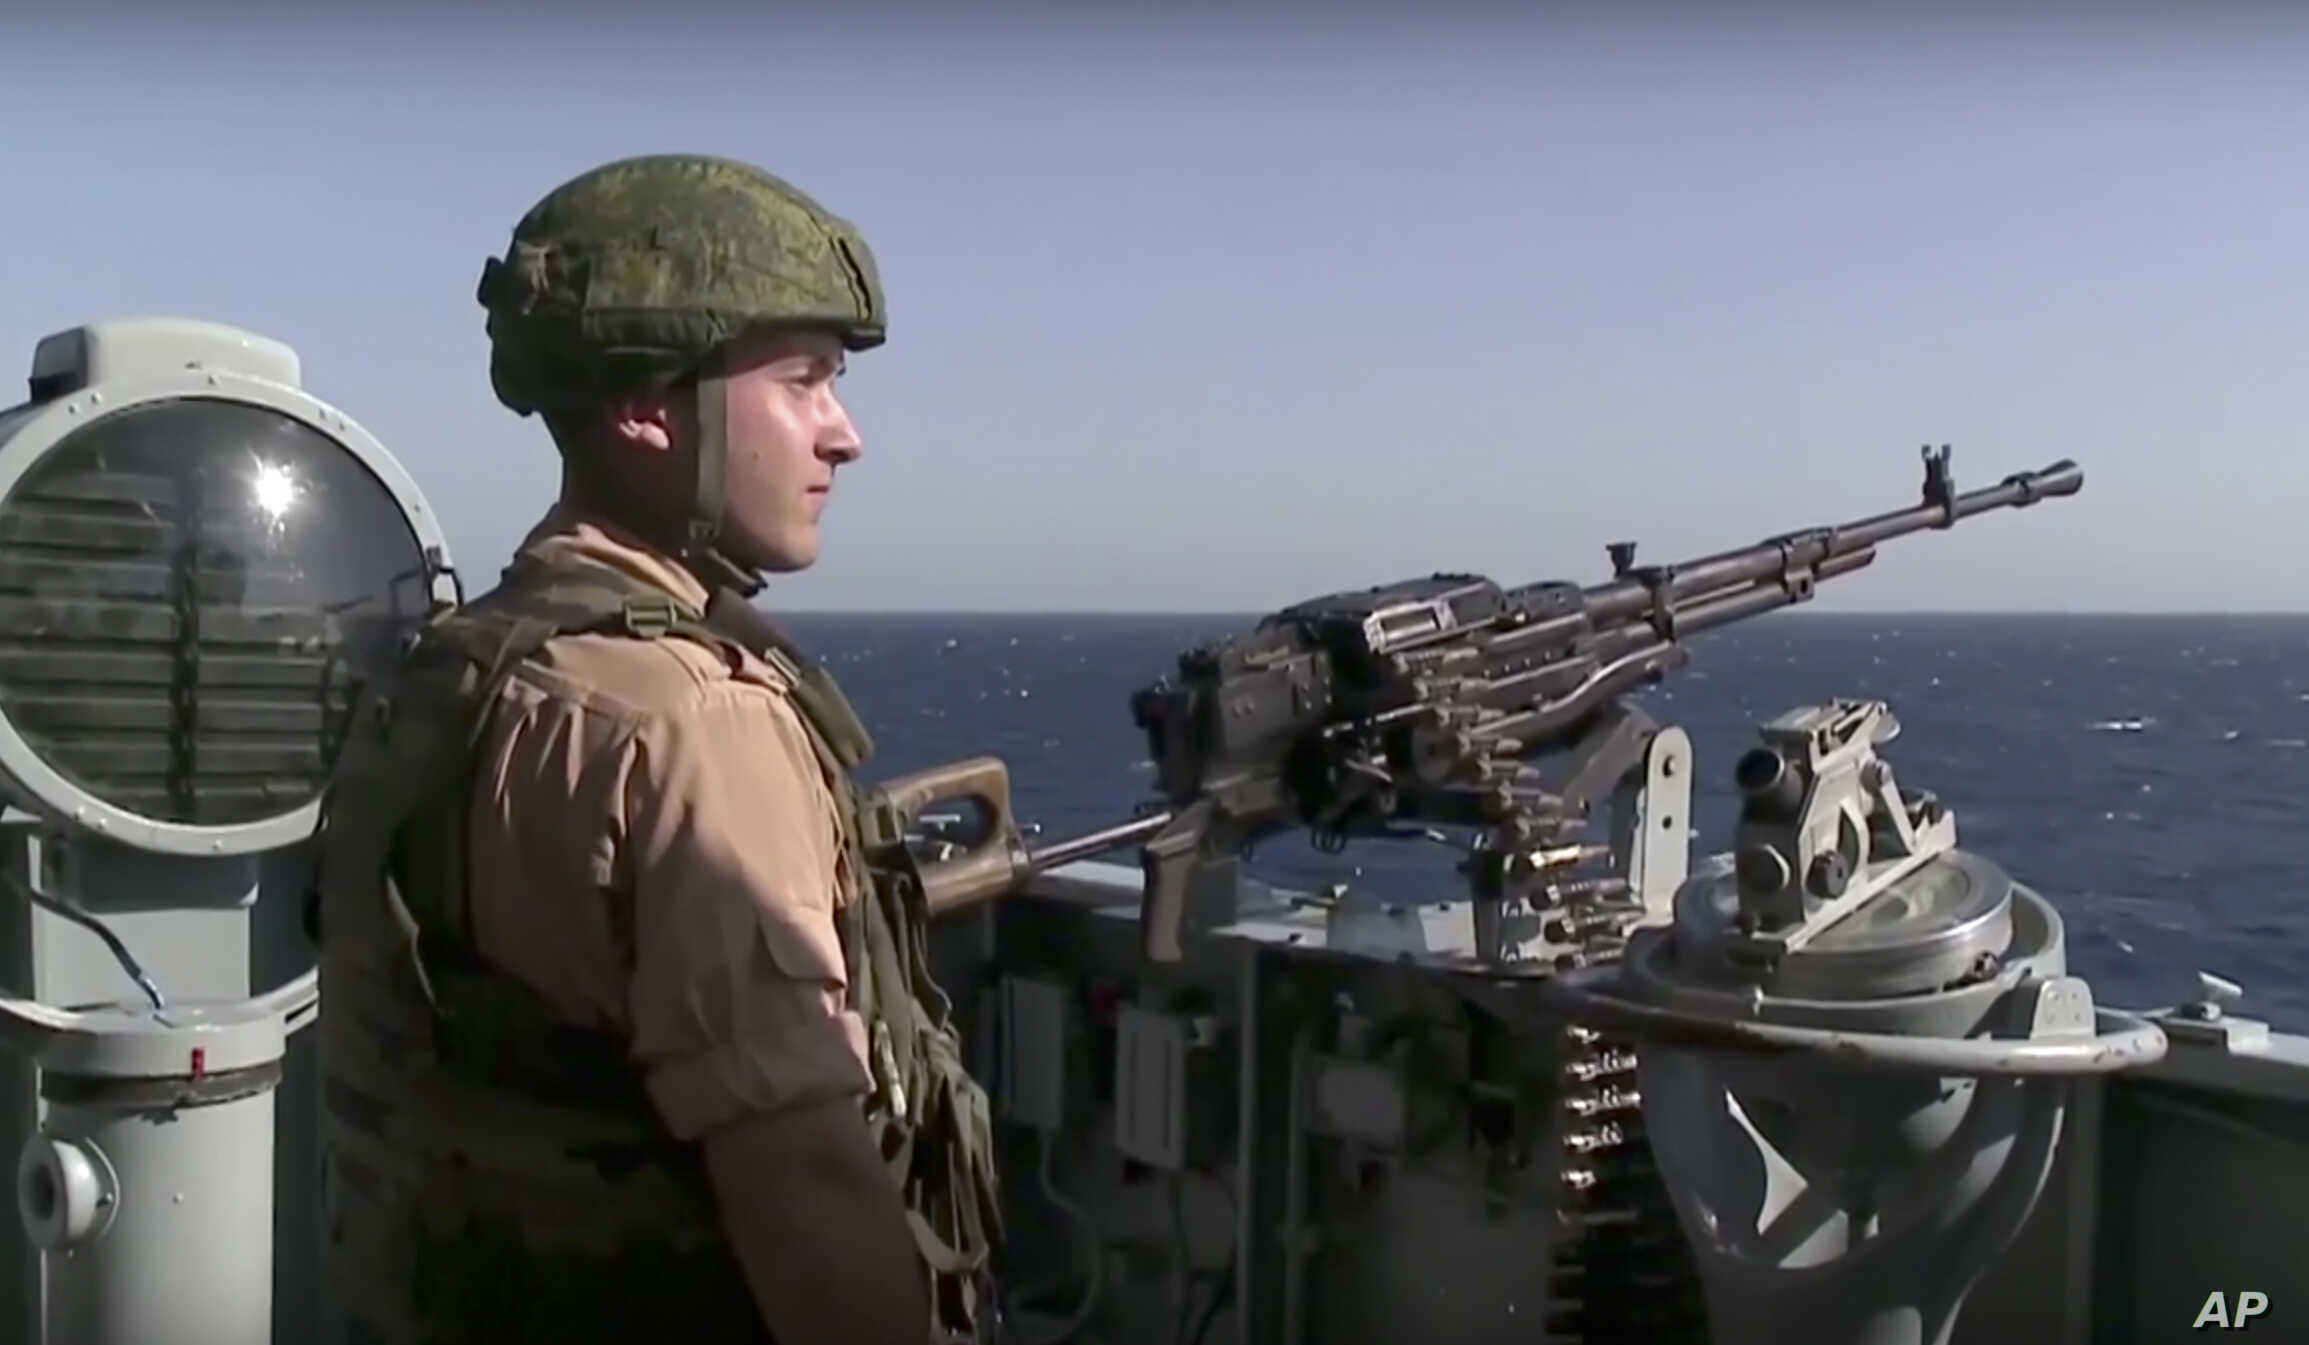 A Russian seaman stands next to a machine gun on the Russian missile cruiser Moskva, near the shore of Syria's province of Latakia, Syria, Nov. 27, 2015.